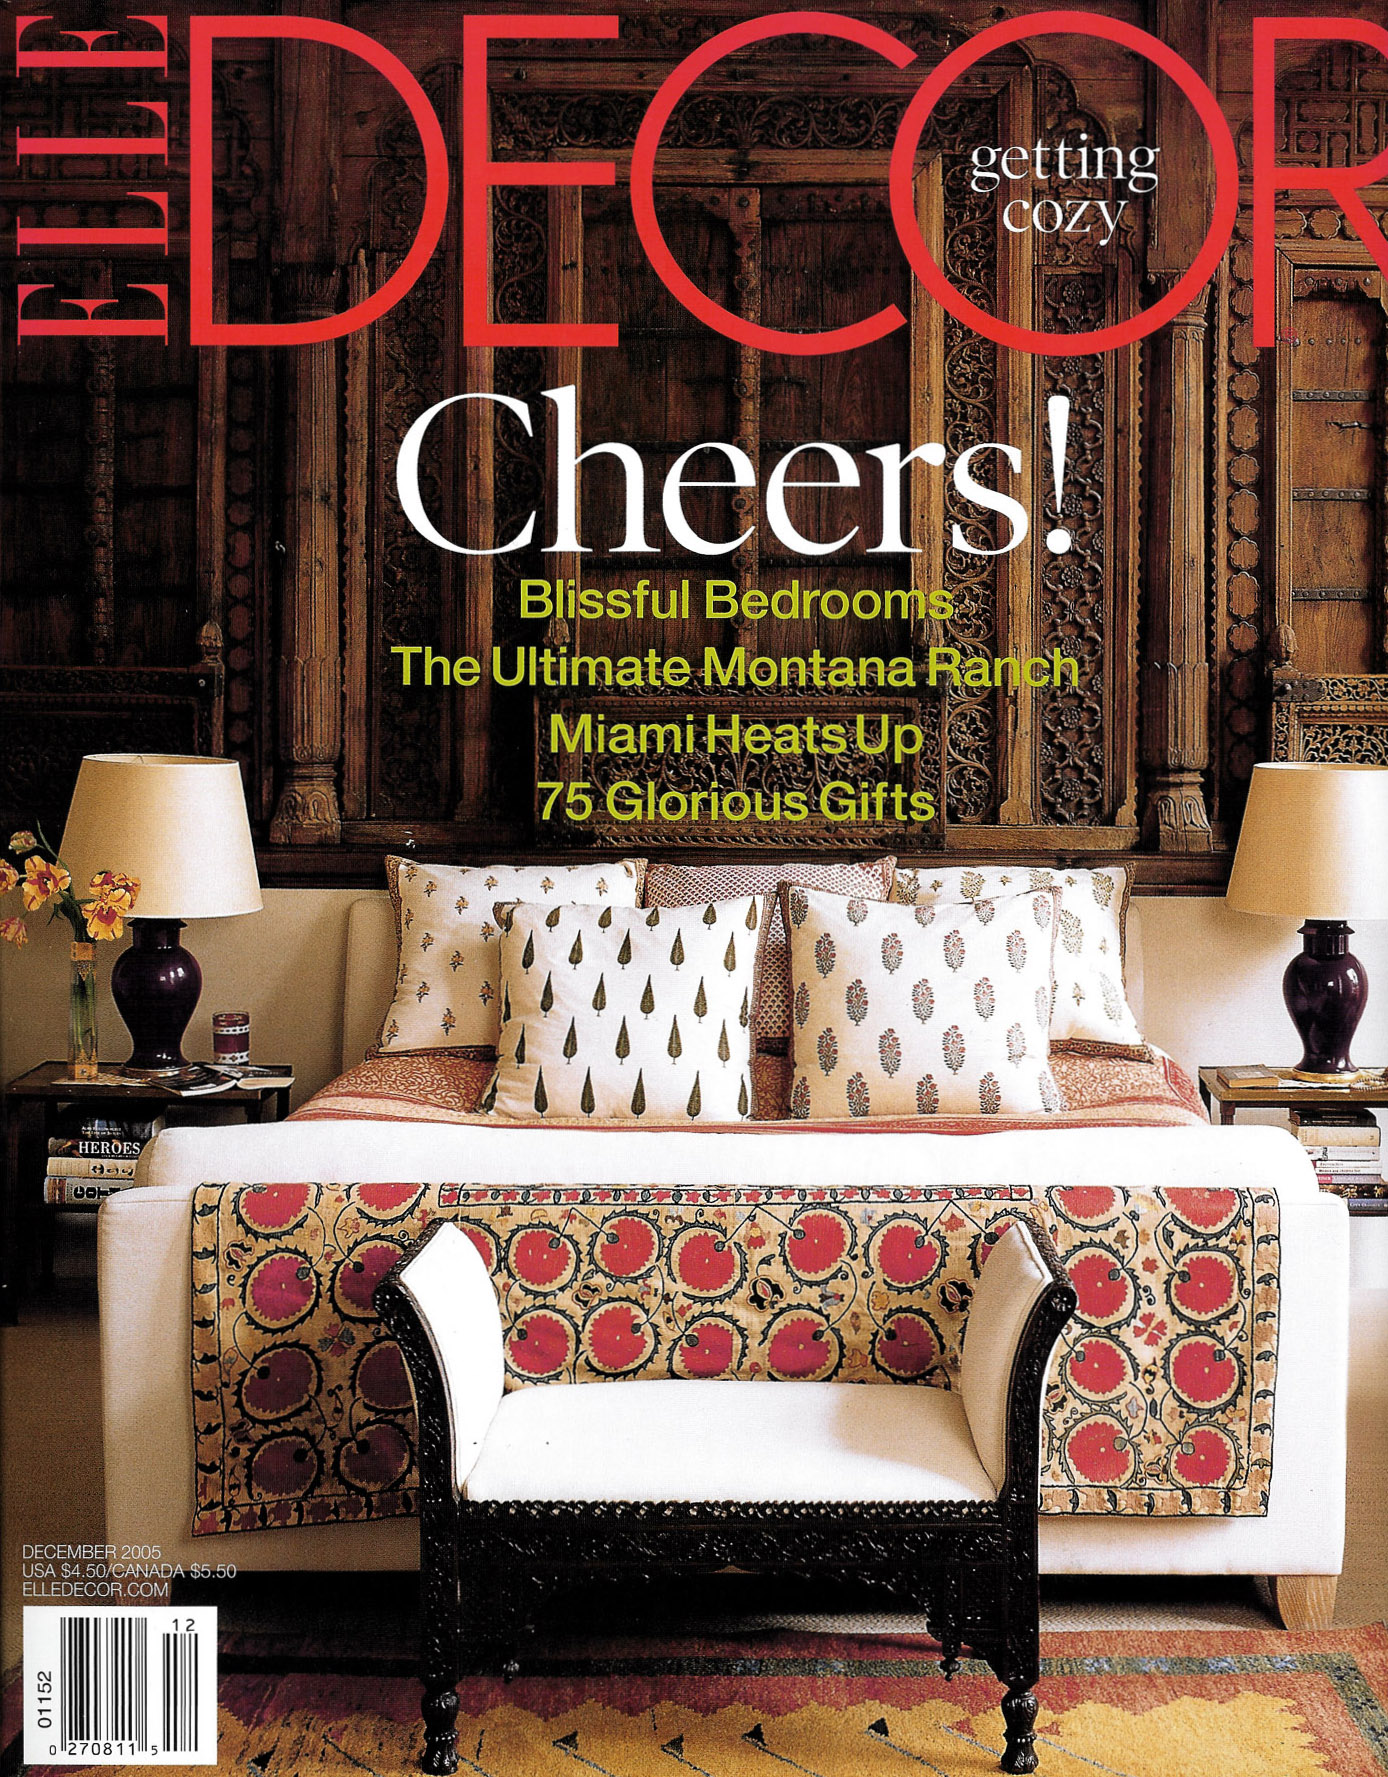 Elle Decor Dec 2005 Cover.jpg